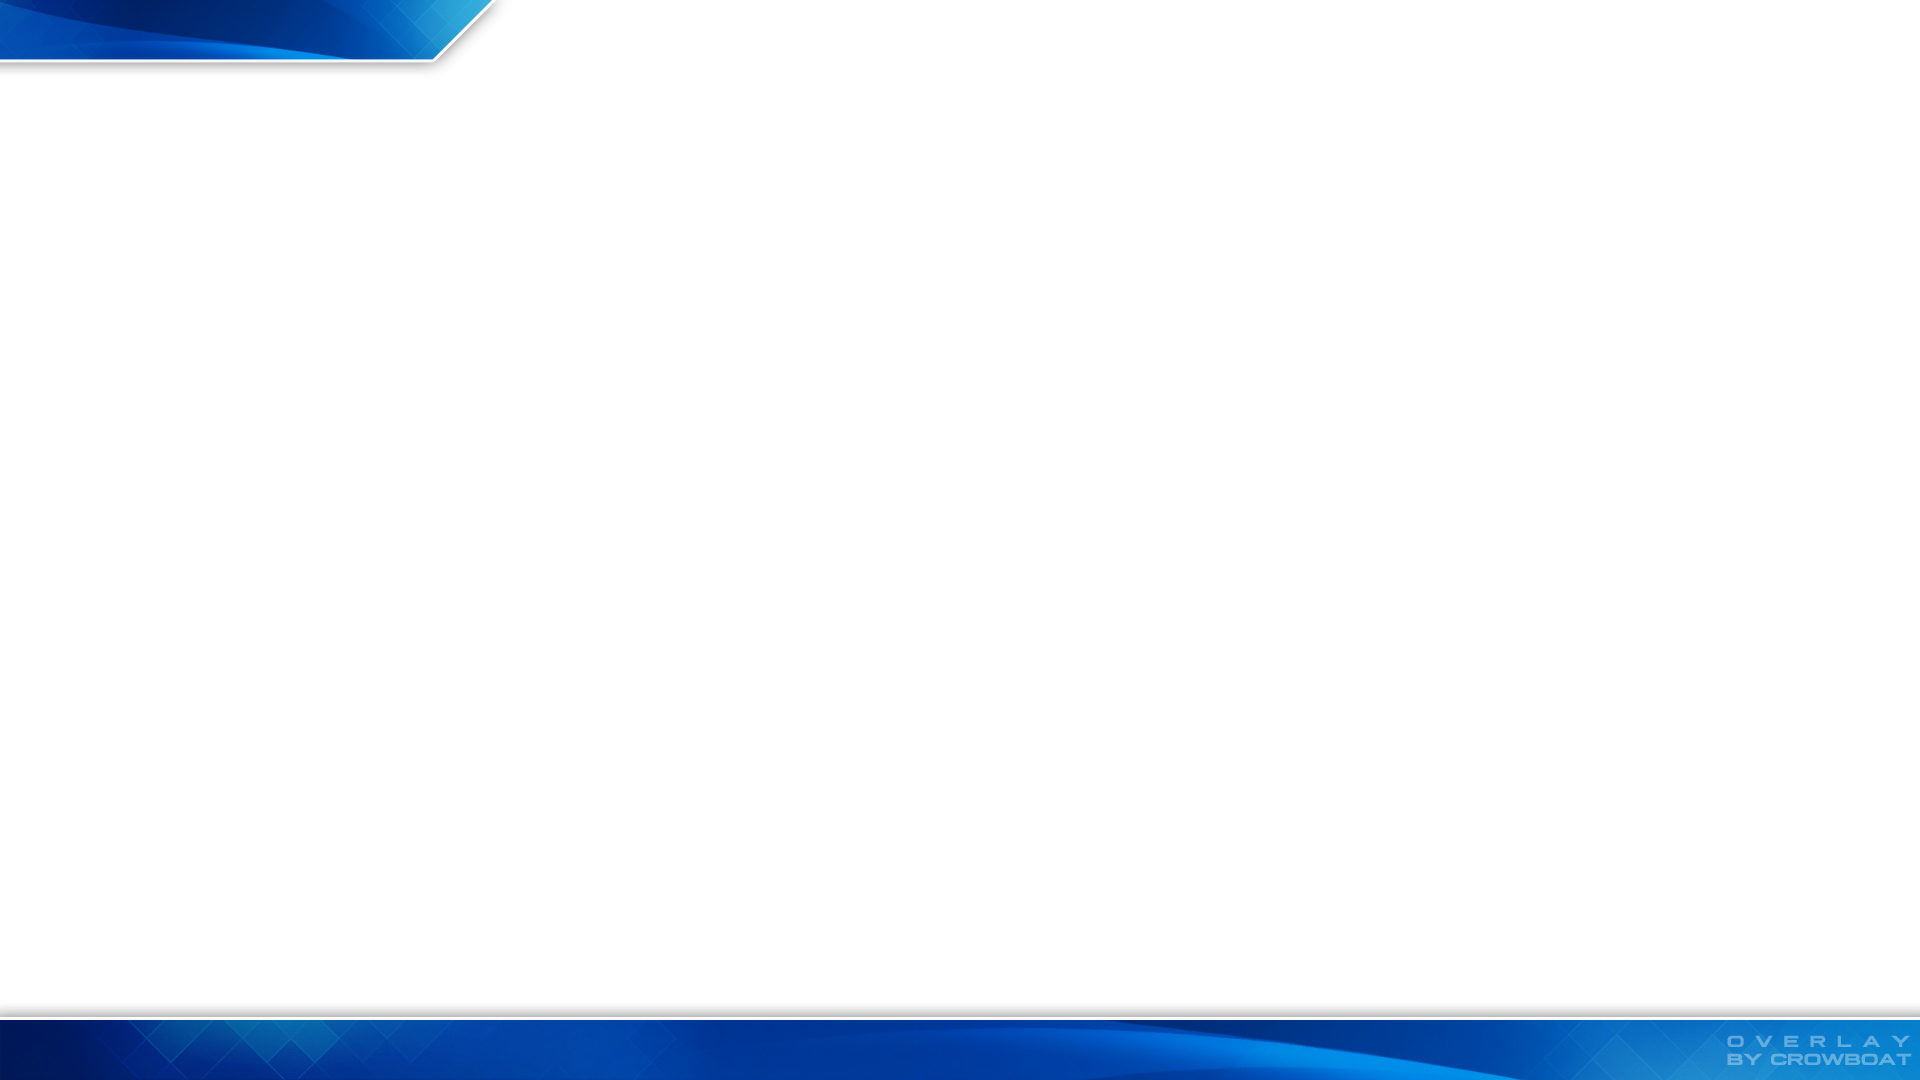 Twitch overlay png. Free minimal design blue